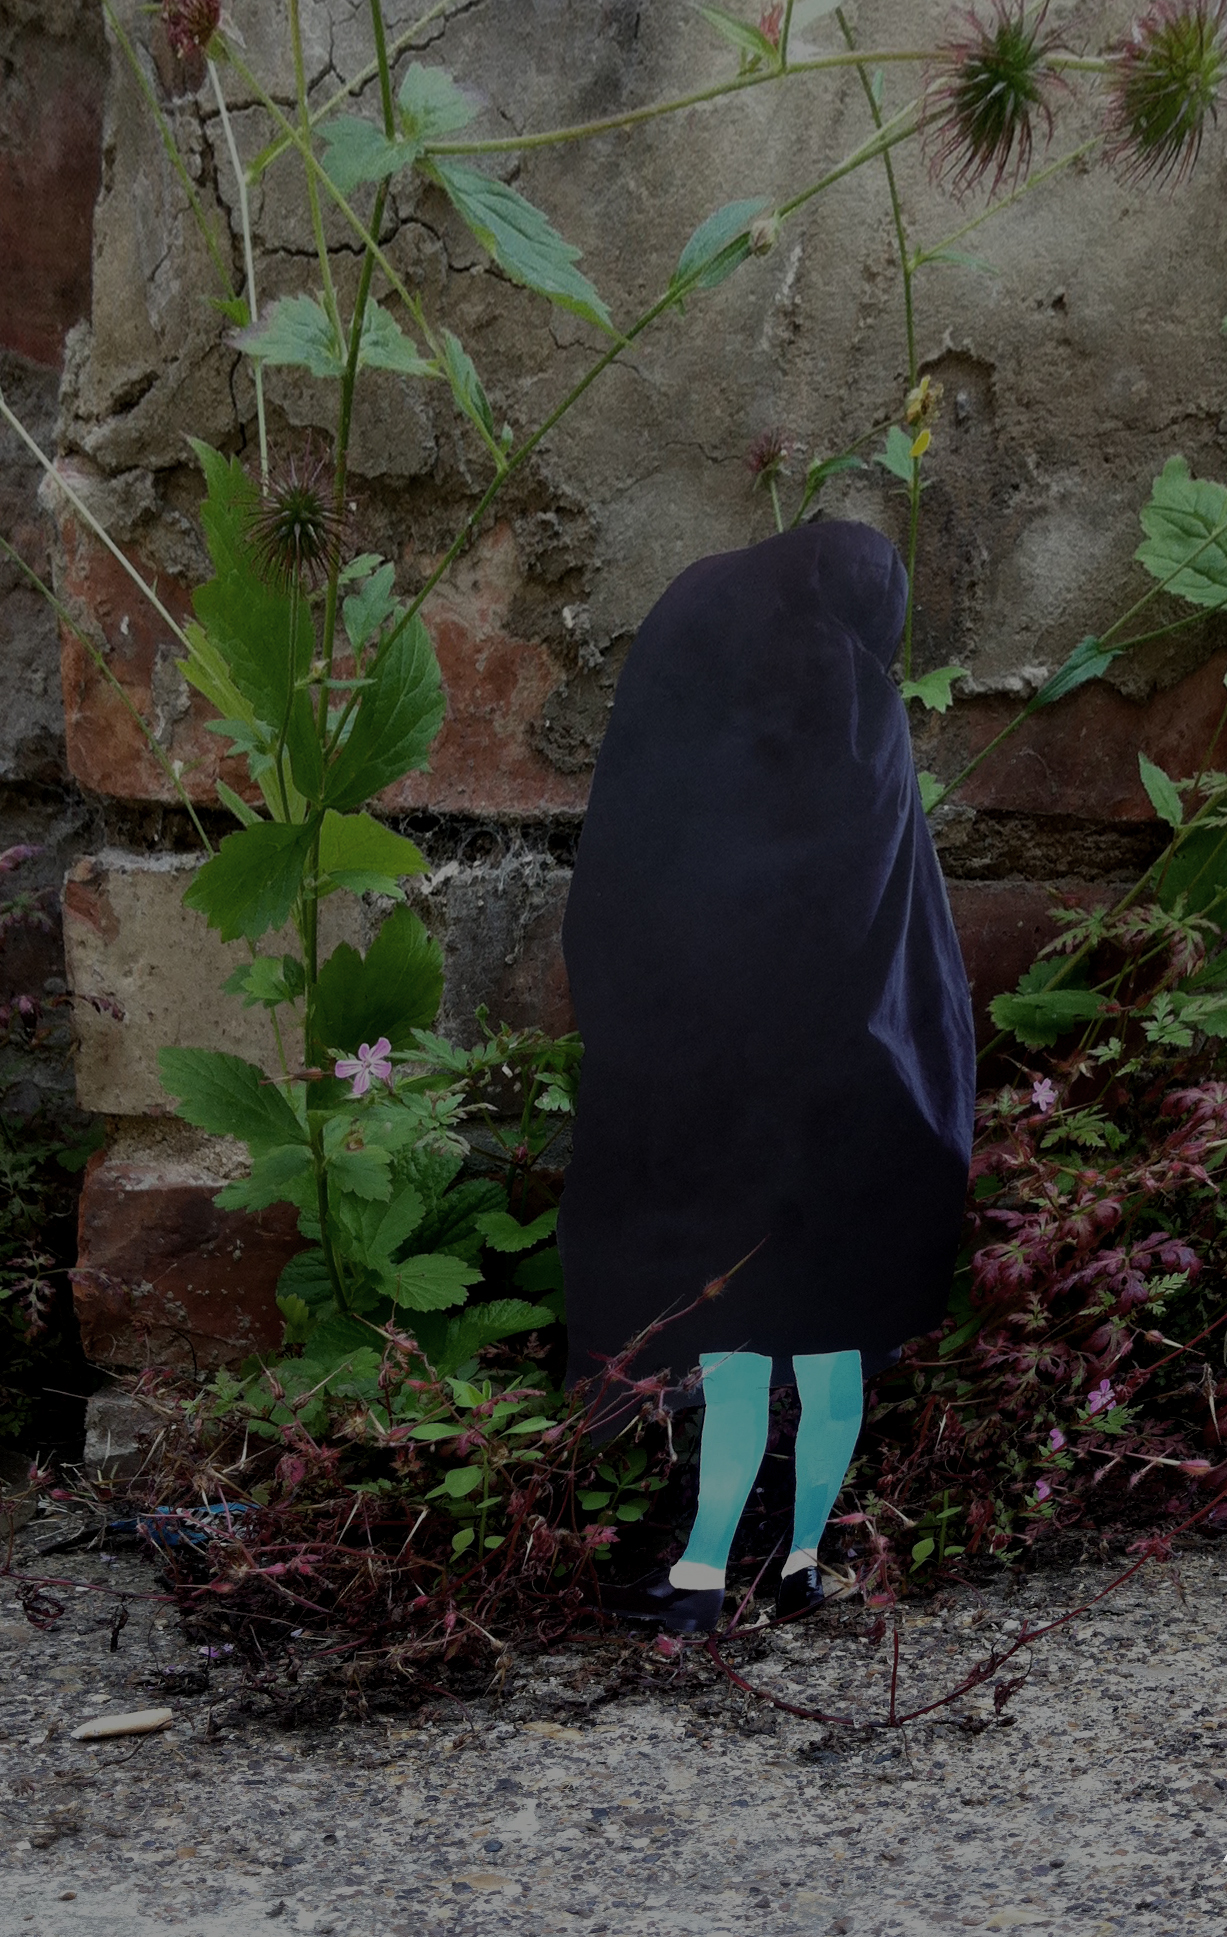 A walk in the woods: a blue-legged figure with a dark cloth over their head and body stands against a brick wall with plants growing round it